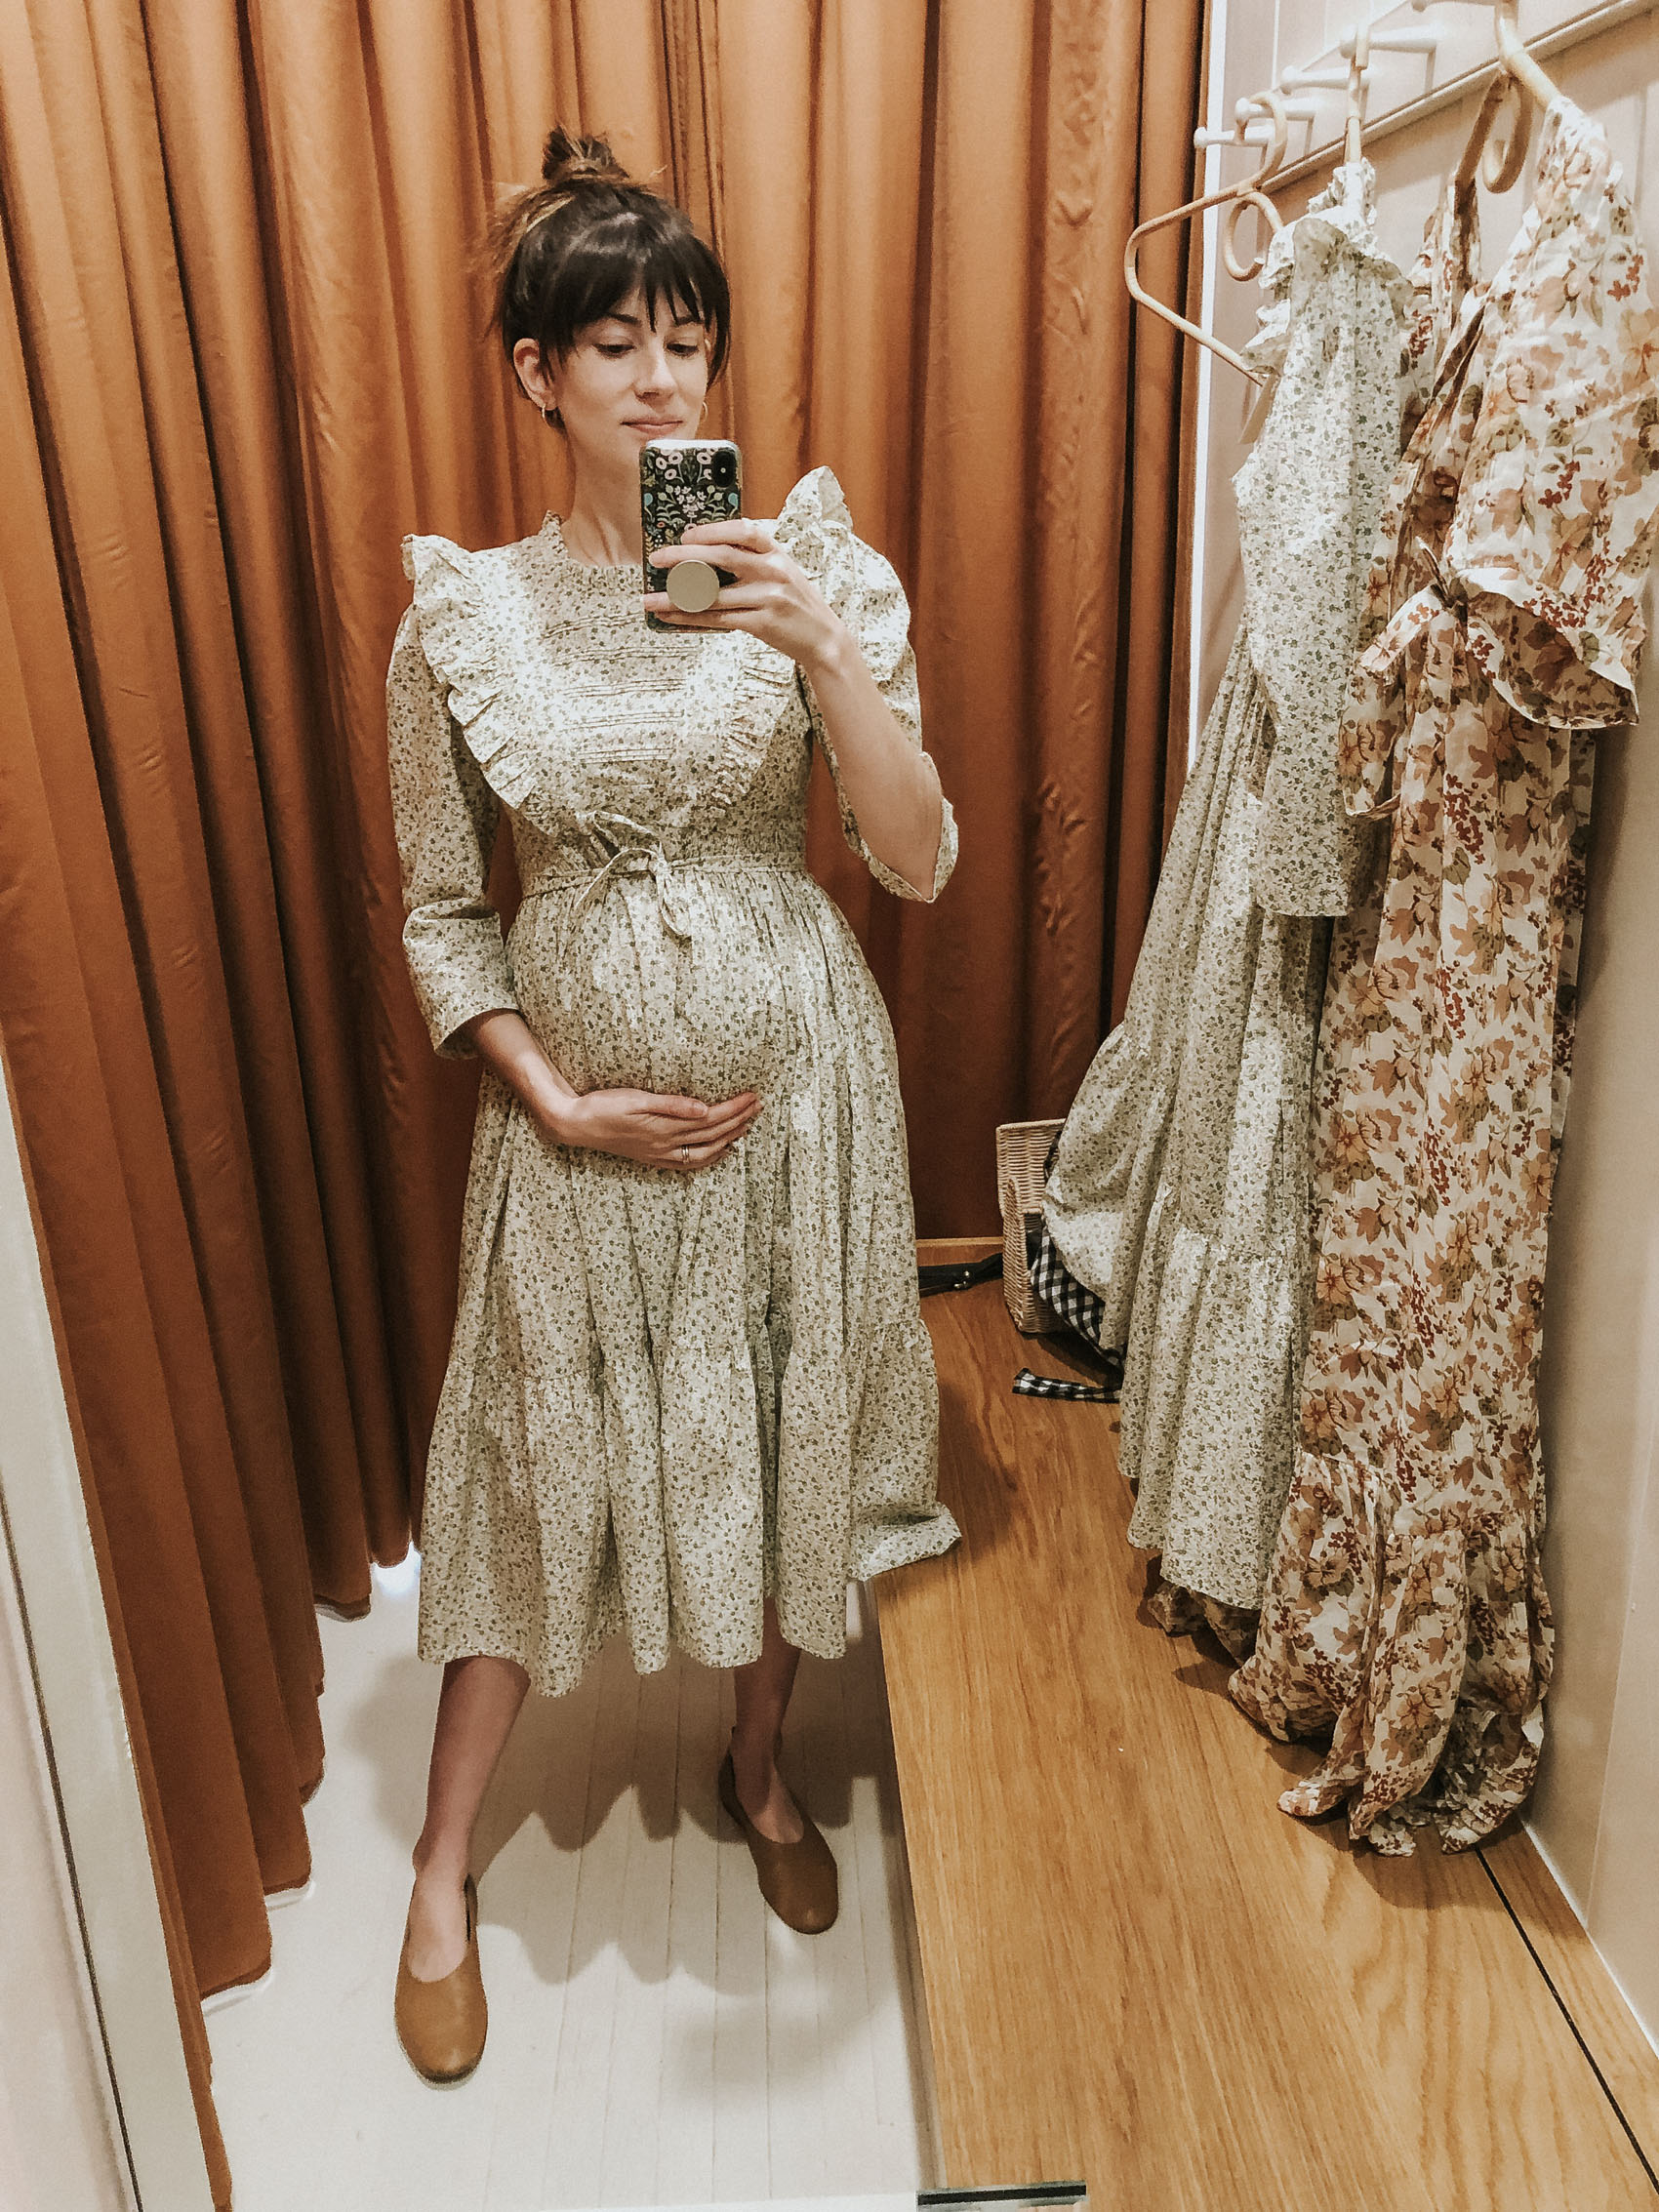 The best non-maternity dresses for pregnancy